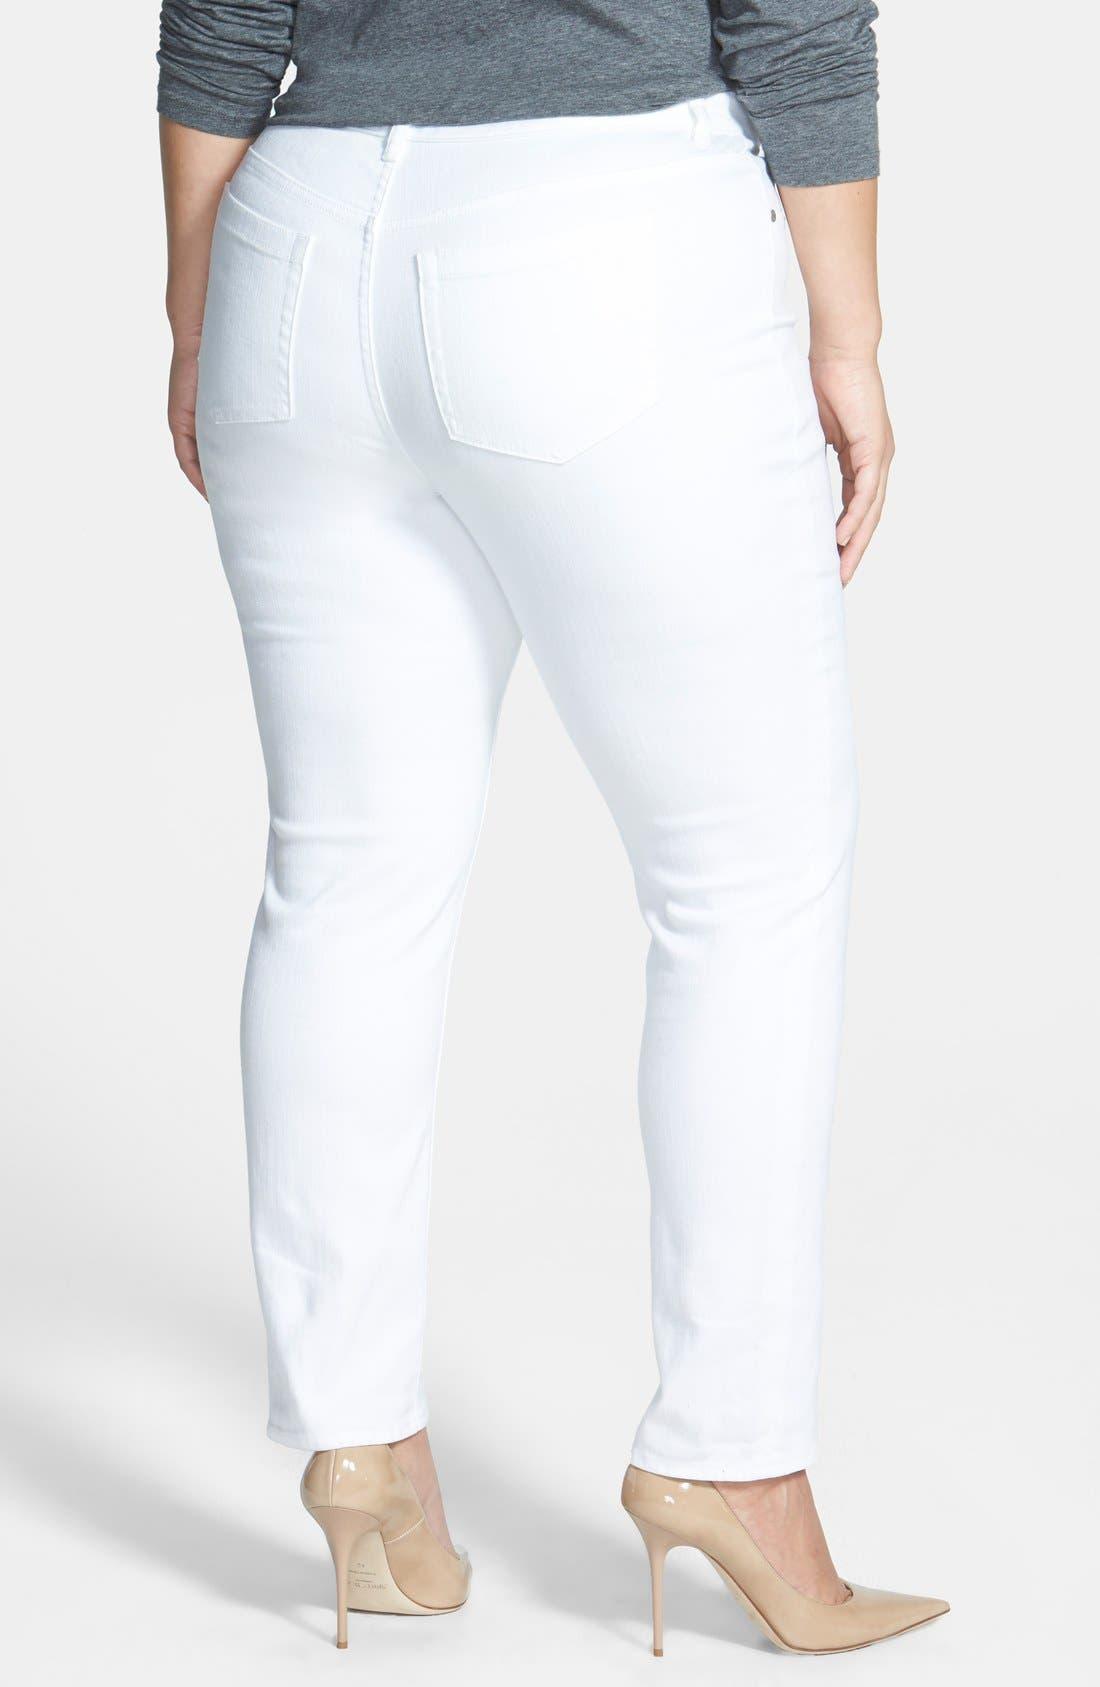 Alternate Image 2  - Two by Vince Camuto Skinny Jeans (White) (Plus Size)